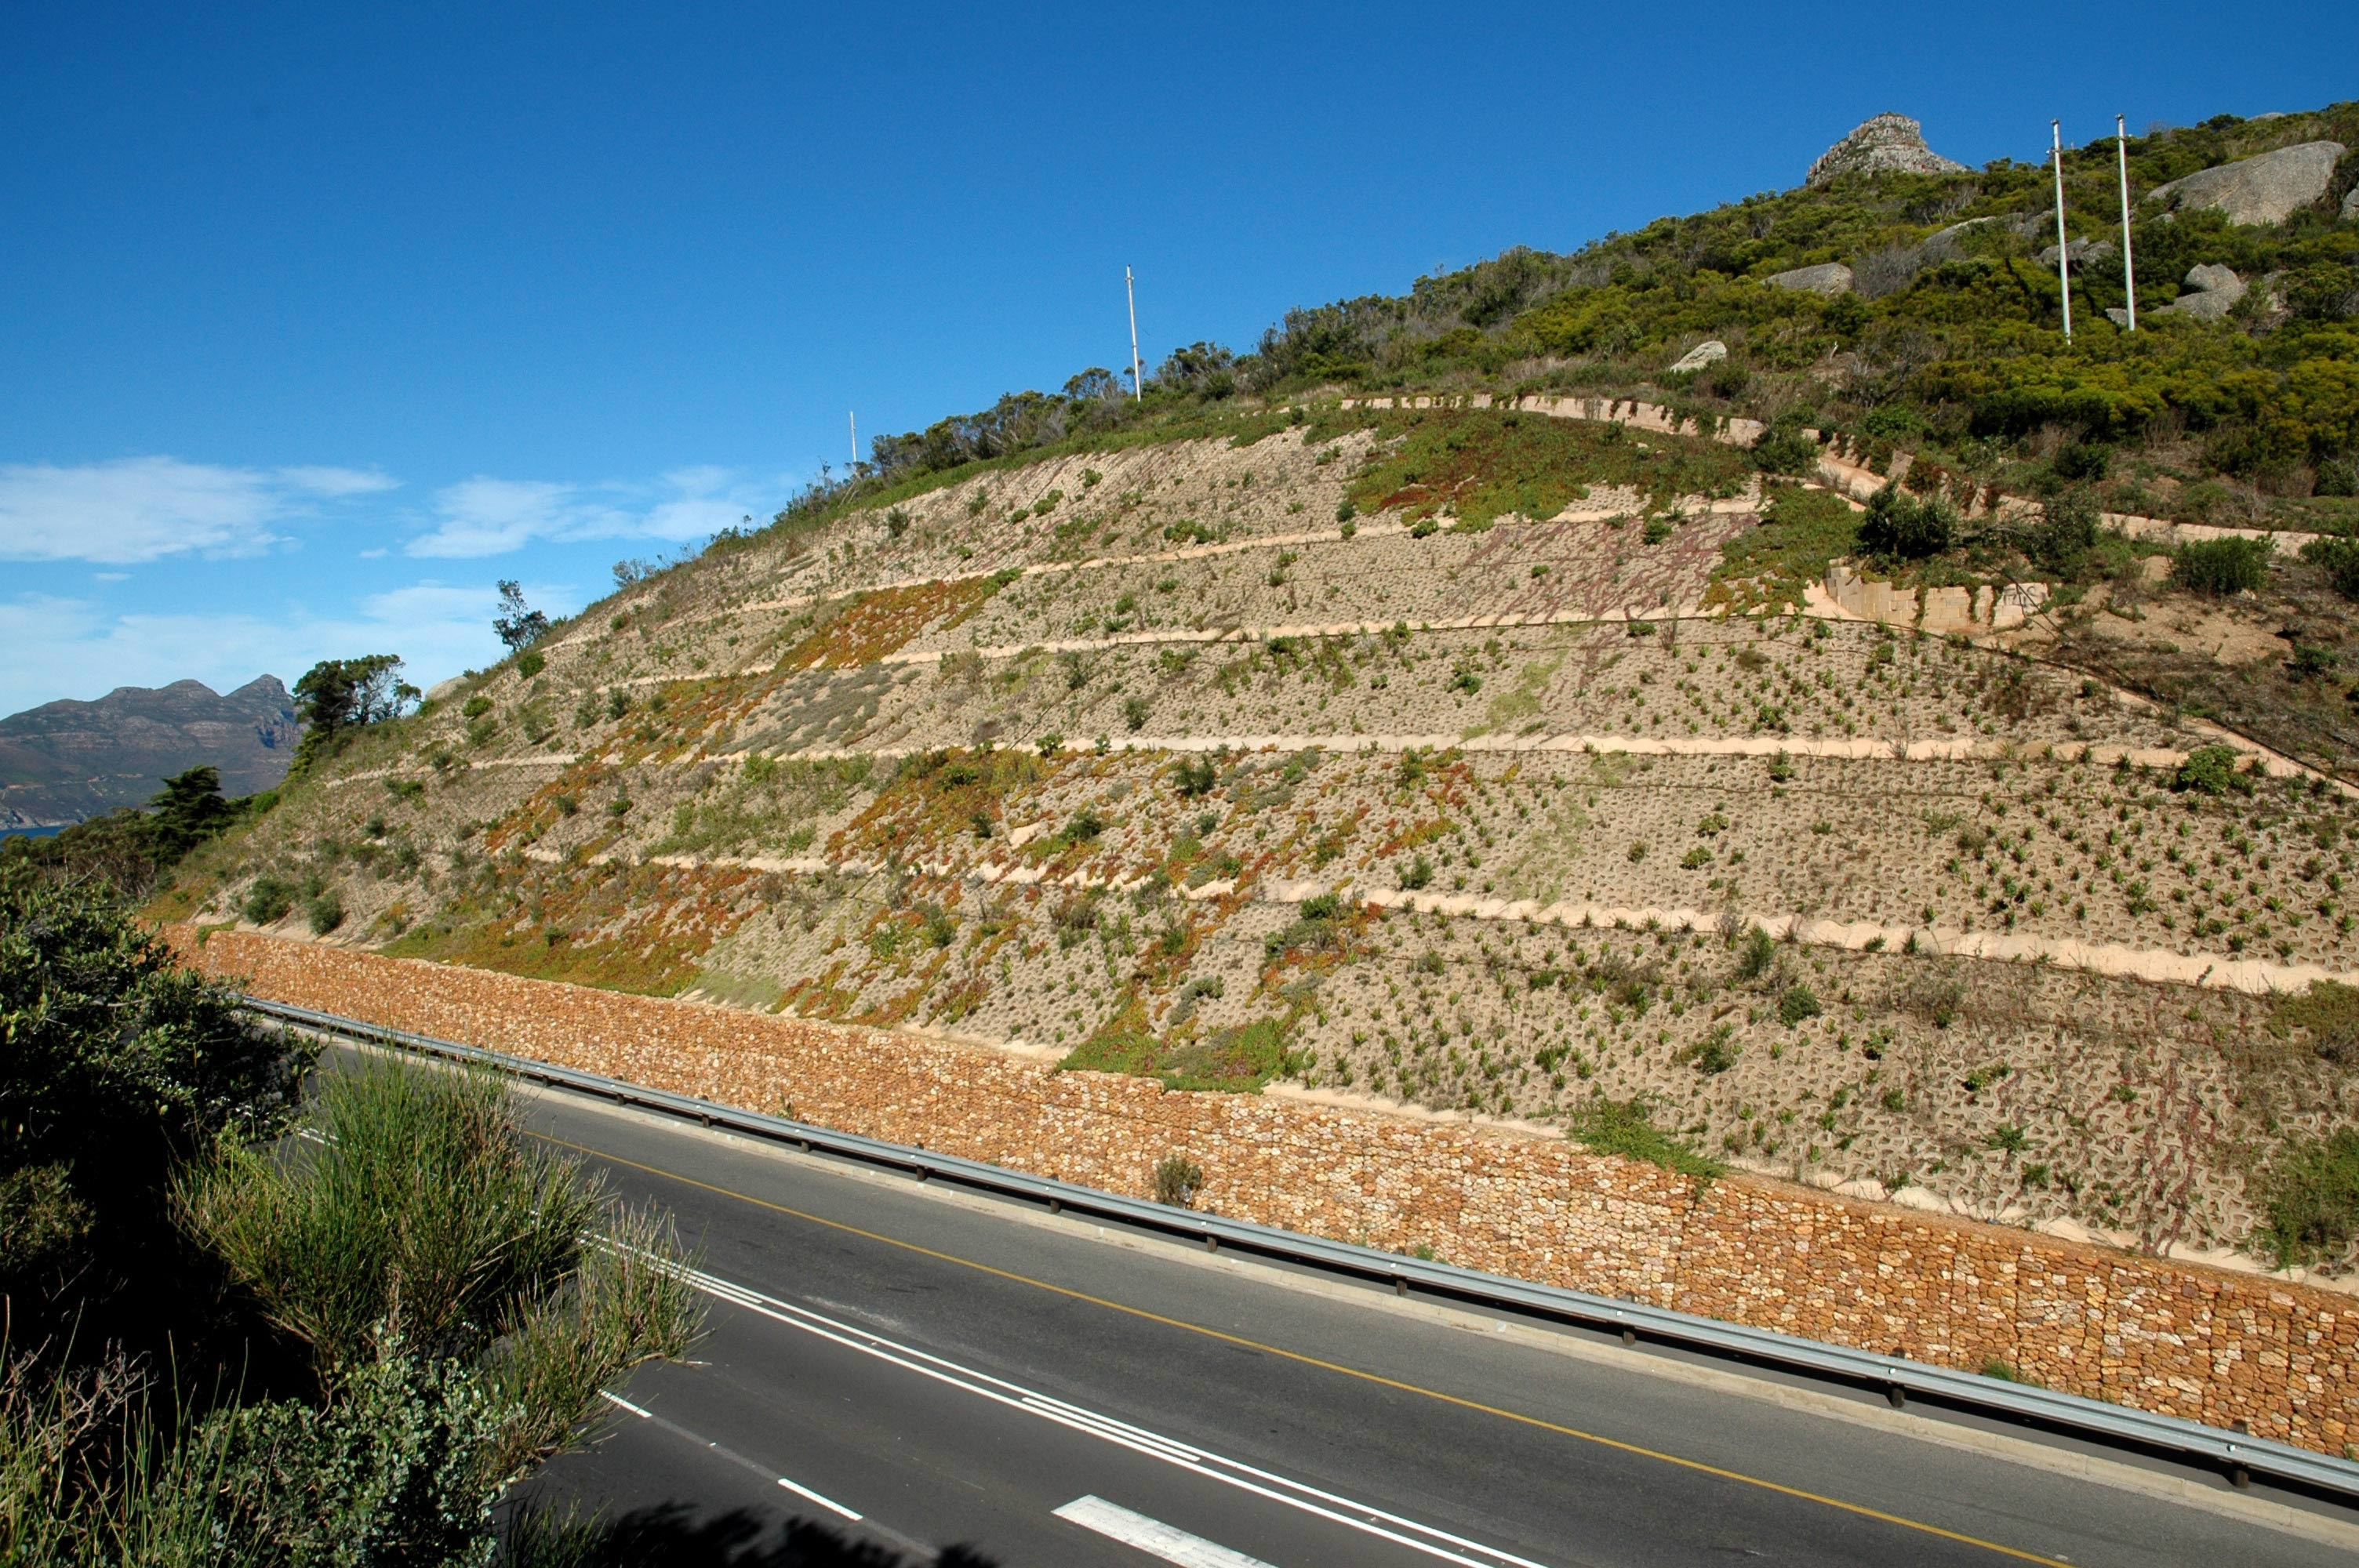 The Rehabilitated Slope with Plant Growth